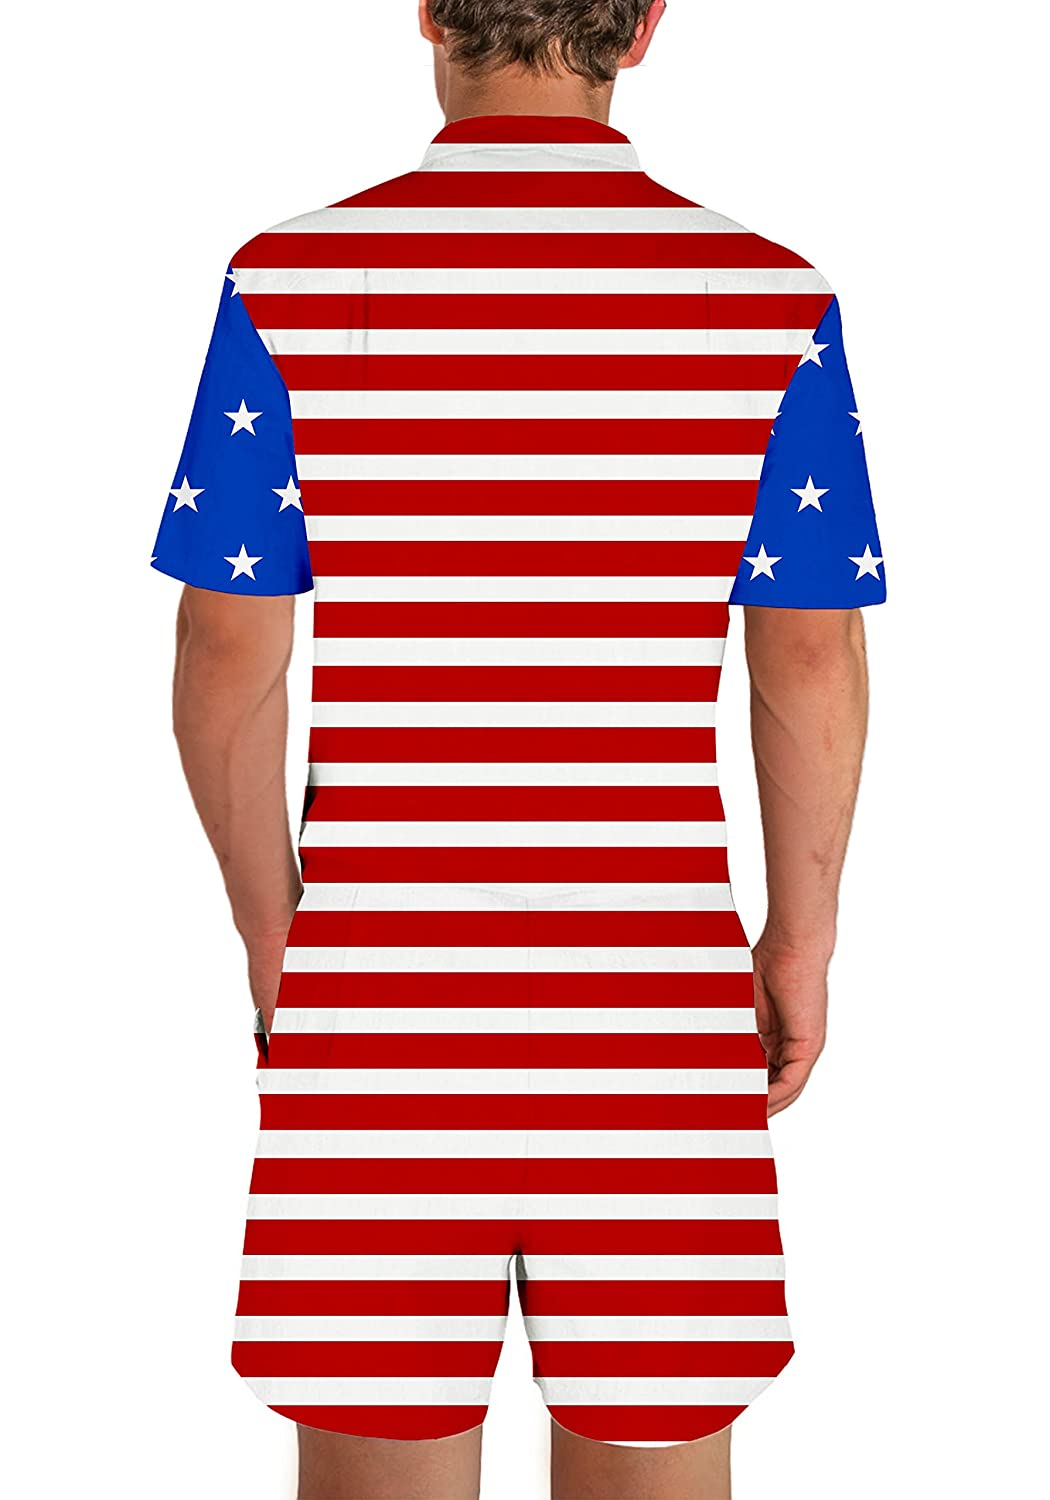 ba69ba8b0f96 uideazone Men s Casual Short Sleeve Fourth of July Jumpsuit Rompers  Overalls Button Down Blouse Shirt with Pockets  Amazon.co.uk  Clothing